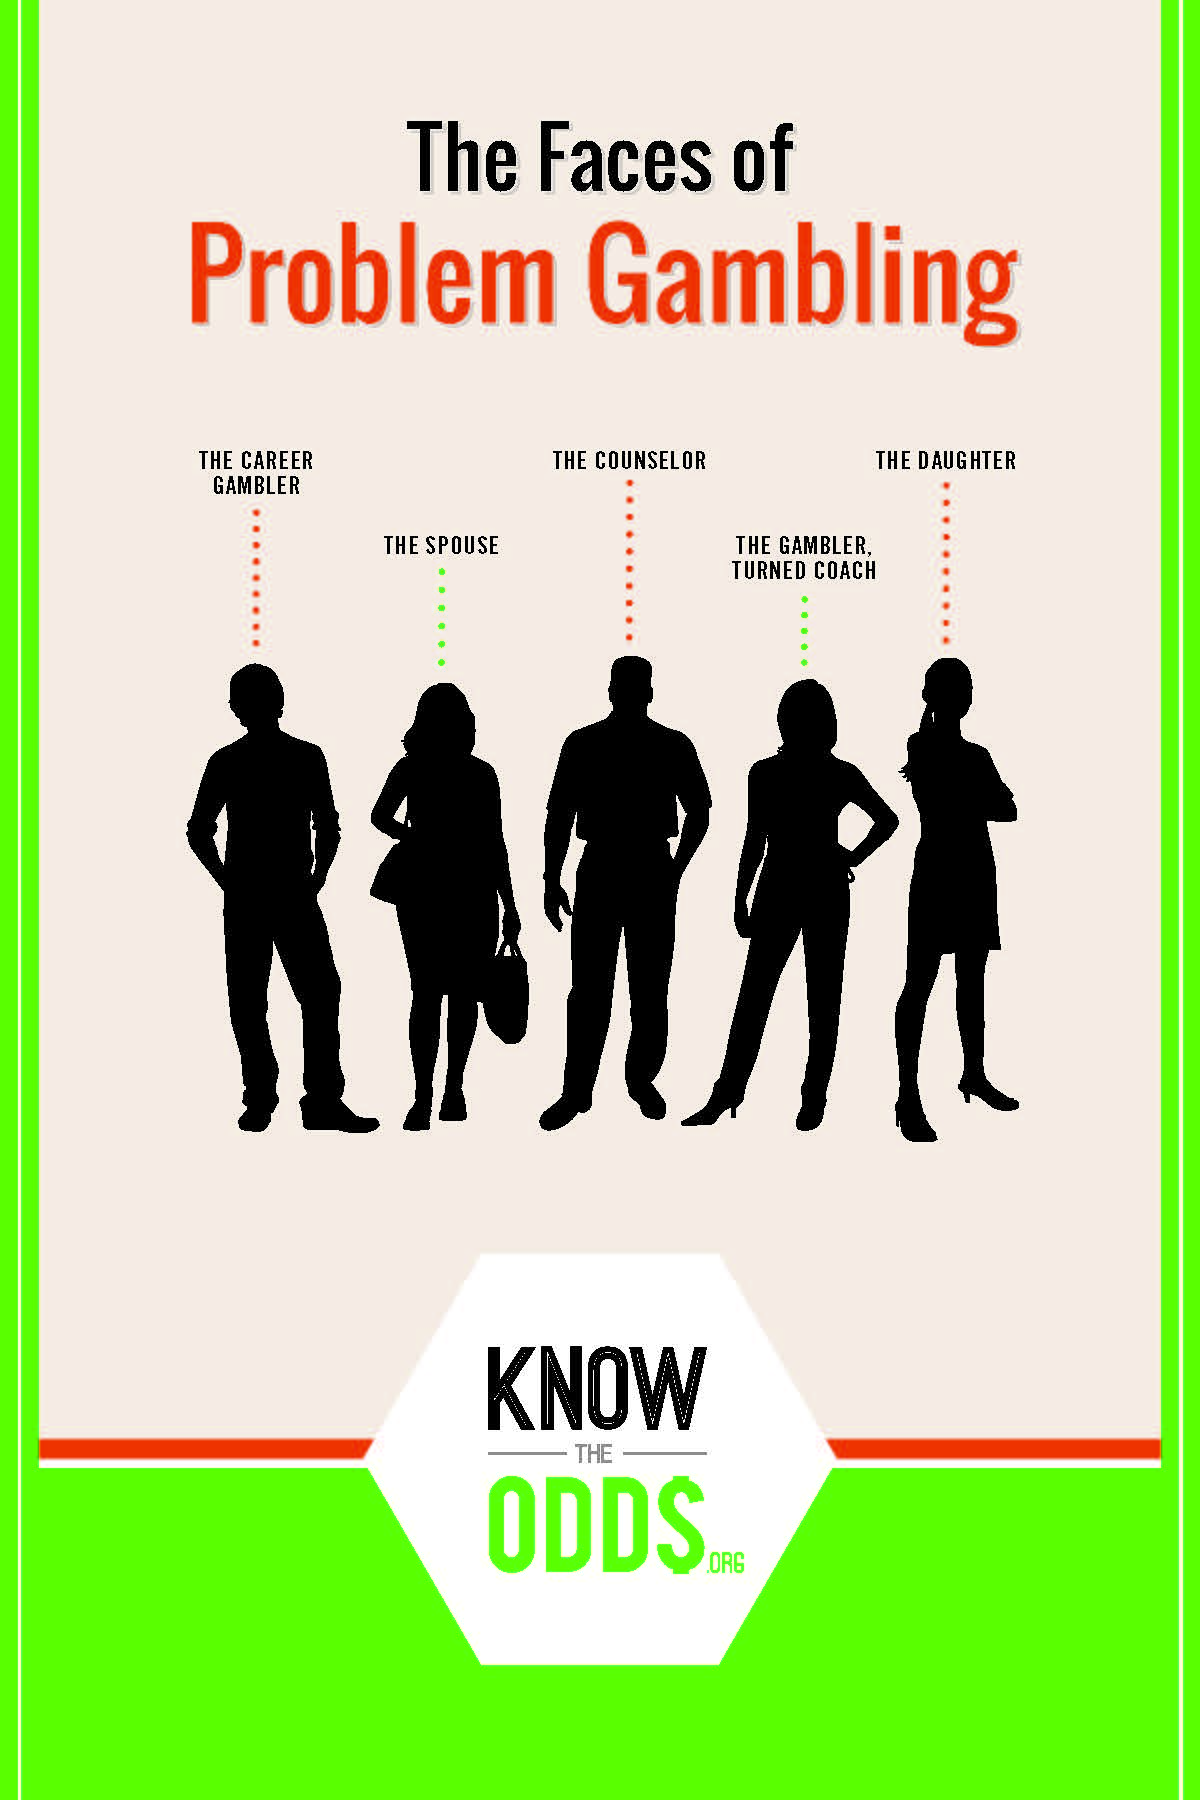 problem gamblers Begambleaware aims to promote responsibility in gambling we provide information to help people make informed decisions about their gambling we will help you to find out more about gambling and what responsible gambling means, to understand and recognise problem gambling, and show you where to go for further information, help and support.